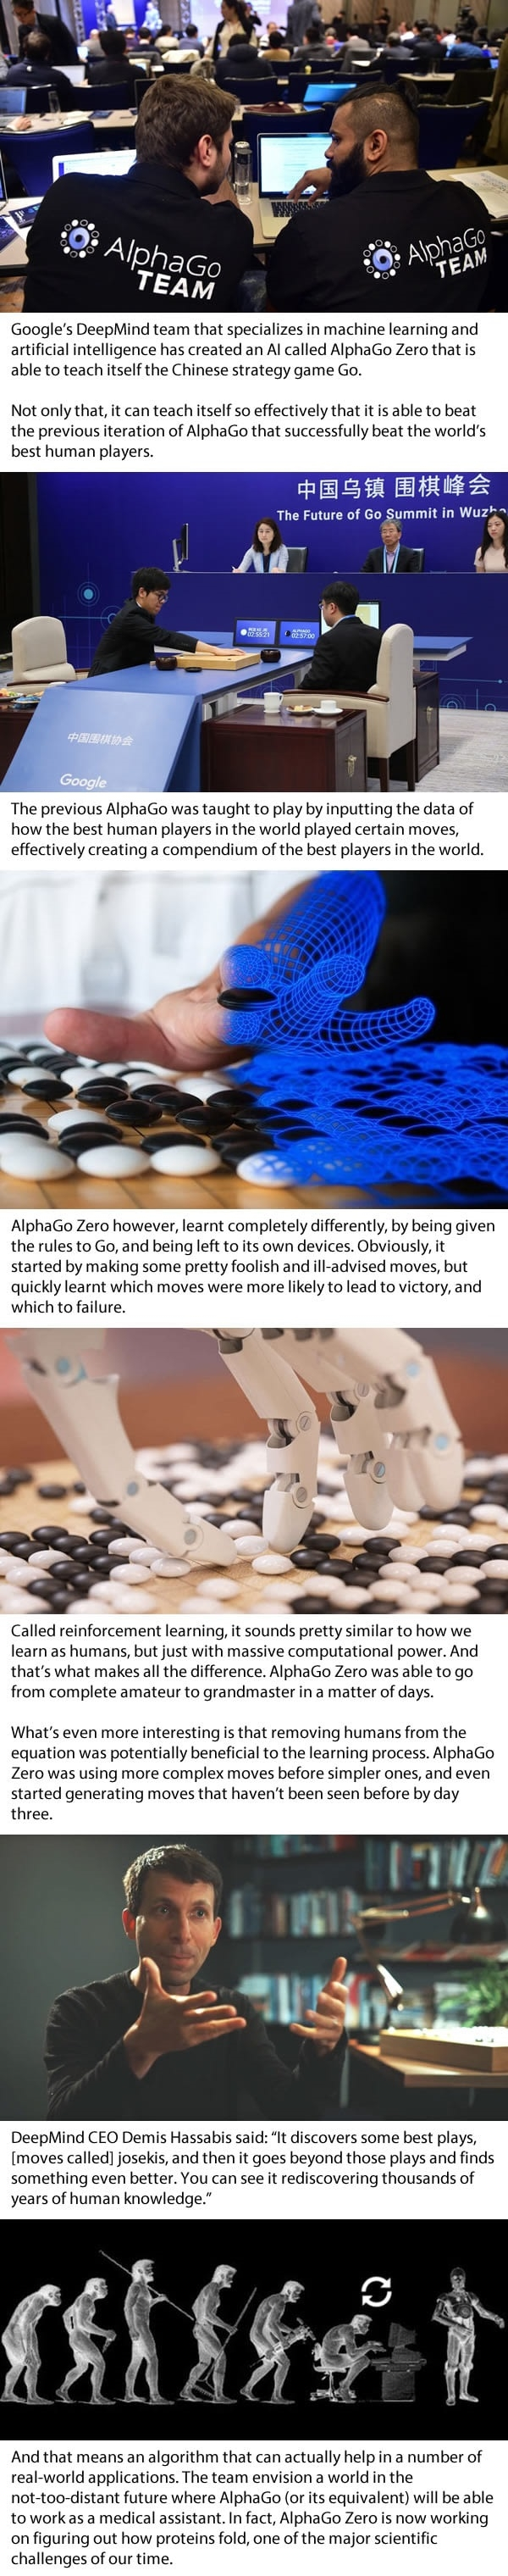 AlphaGo Zero AI teaches itself to play Go better than any human, or other AI